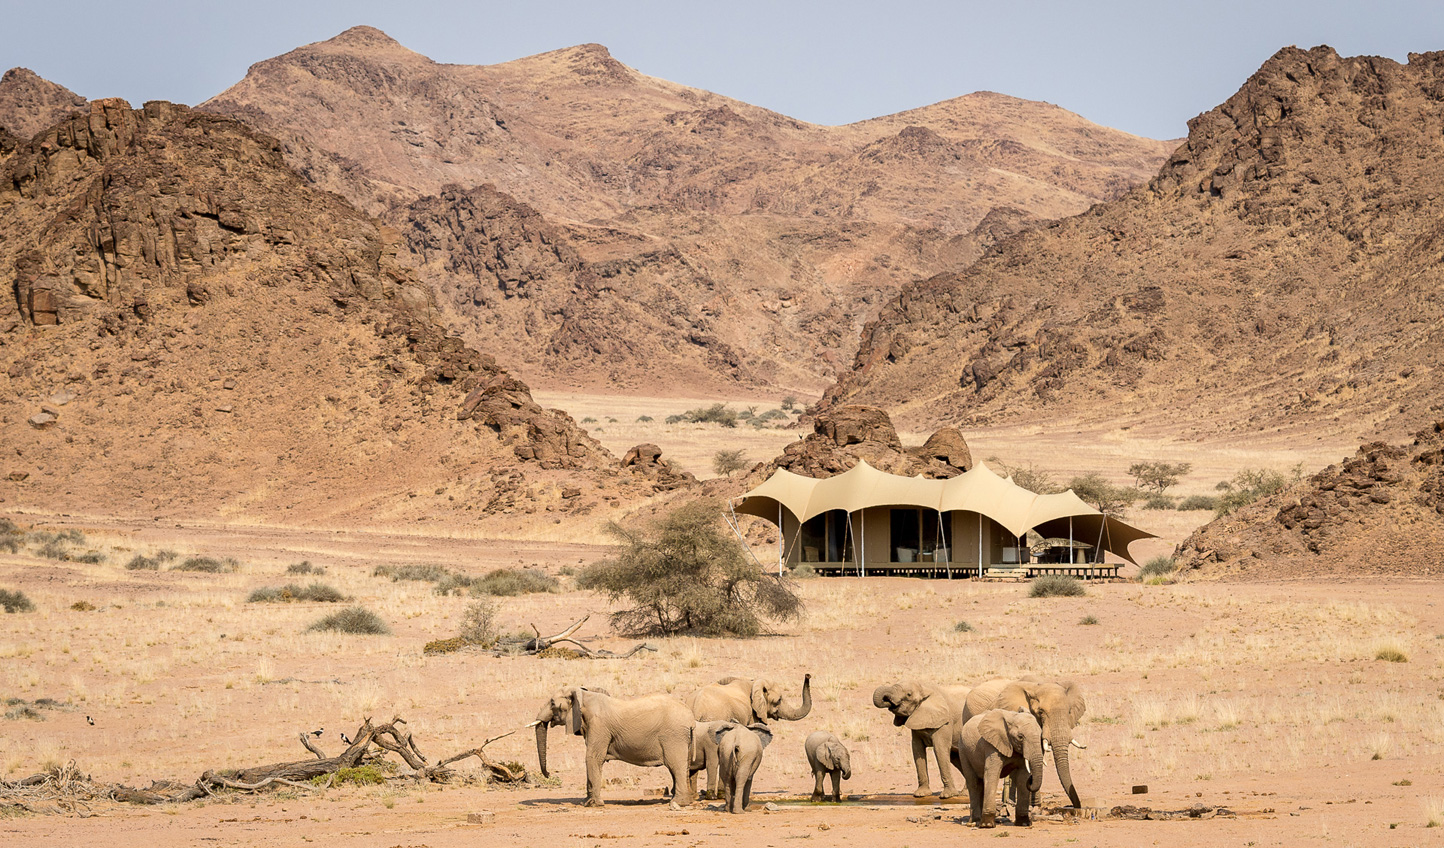 Settle into the wilderness at Hoanib Skeleton Coast Camp